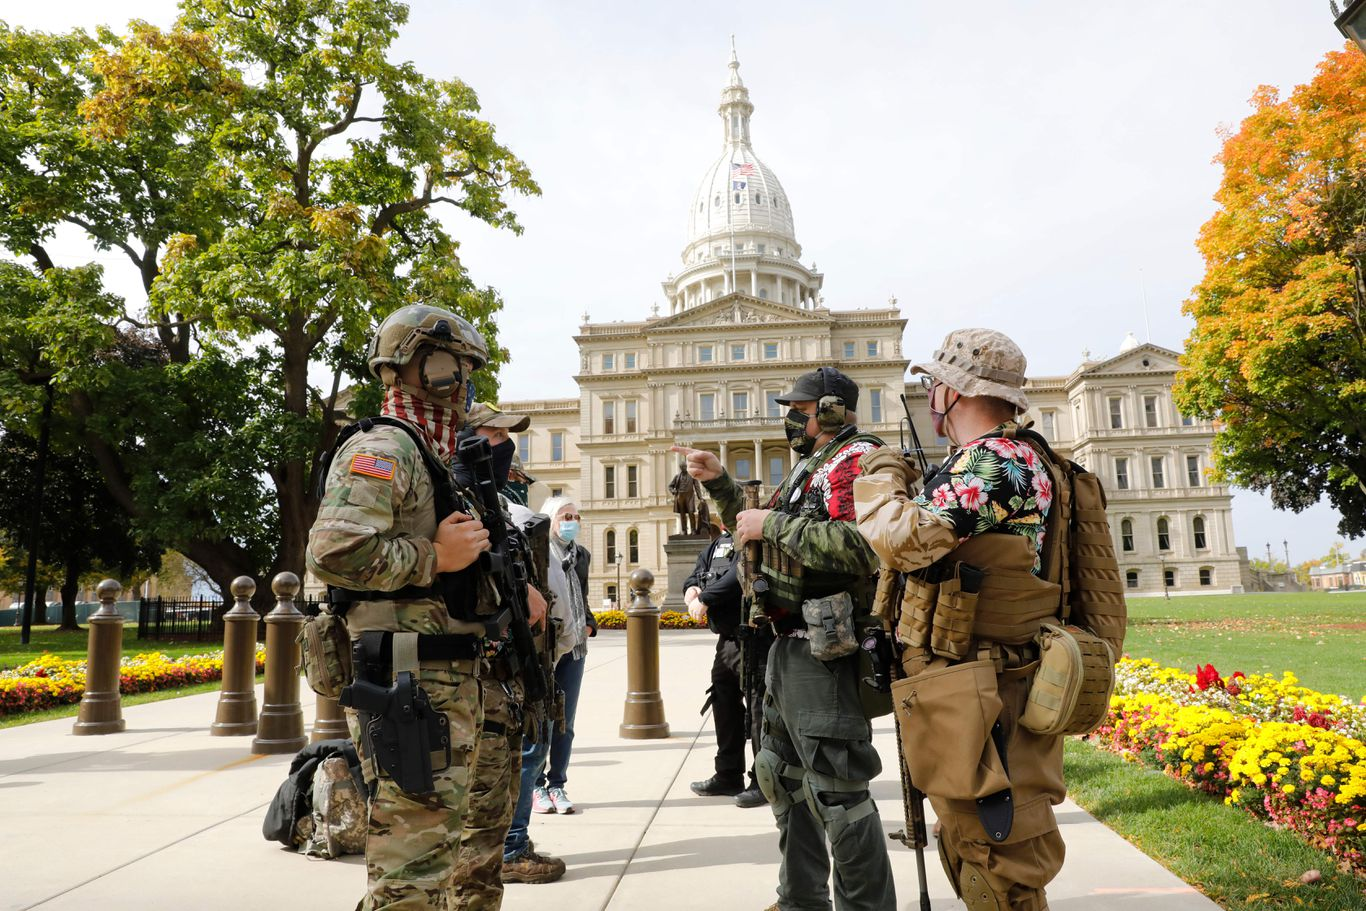 Judge overturns ban on open carry of guns at Michigan polling places